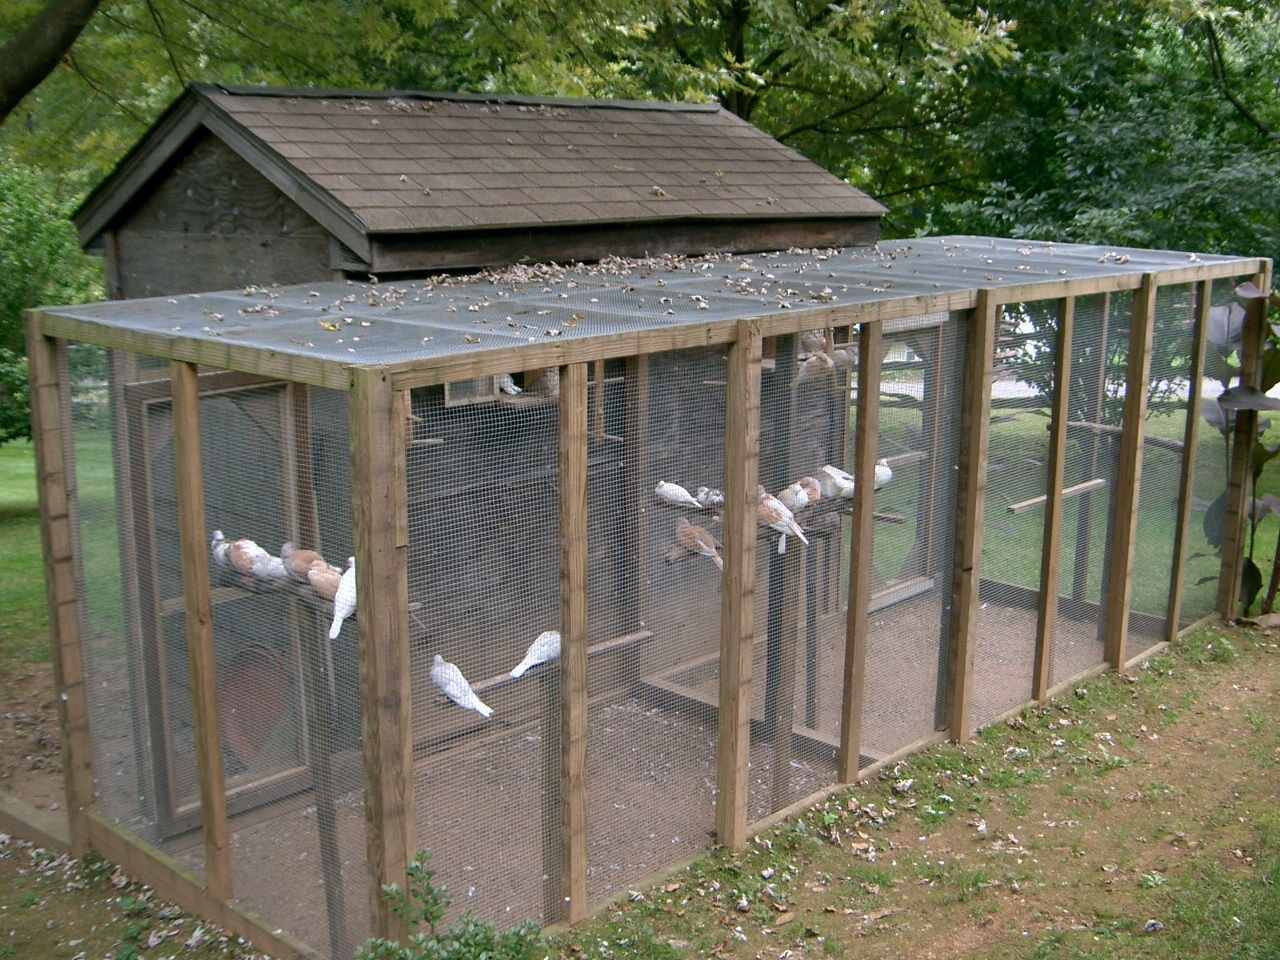 The Coocoo House is my dove loft located in Connecticut. I